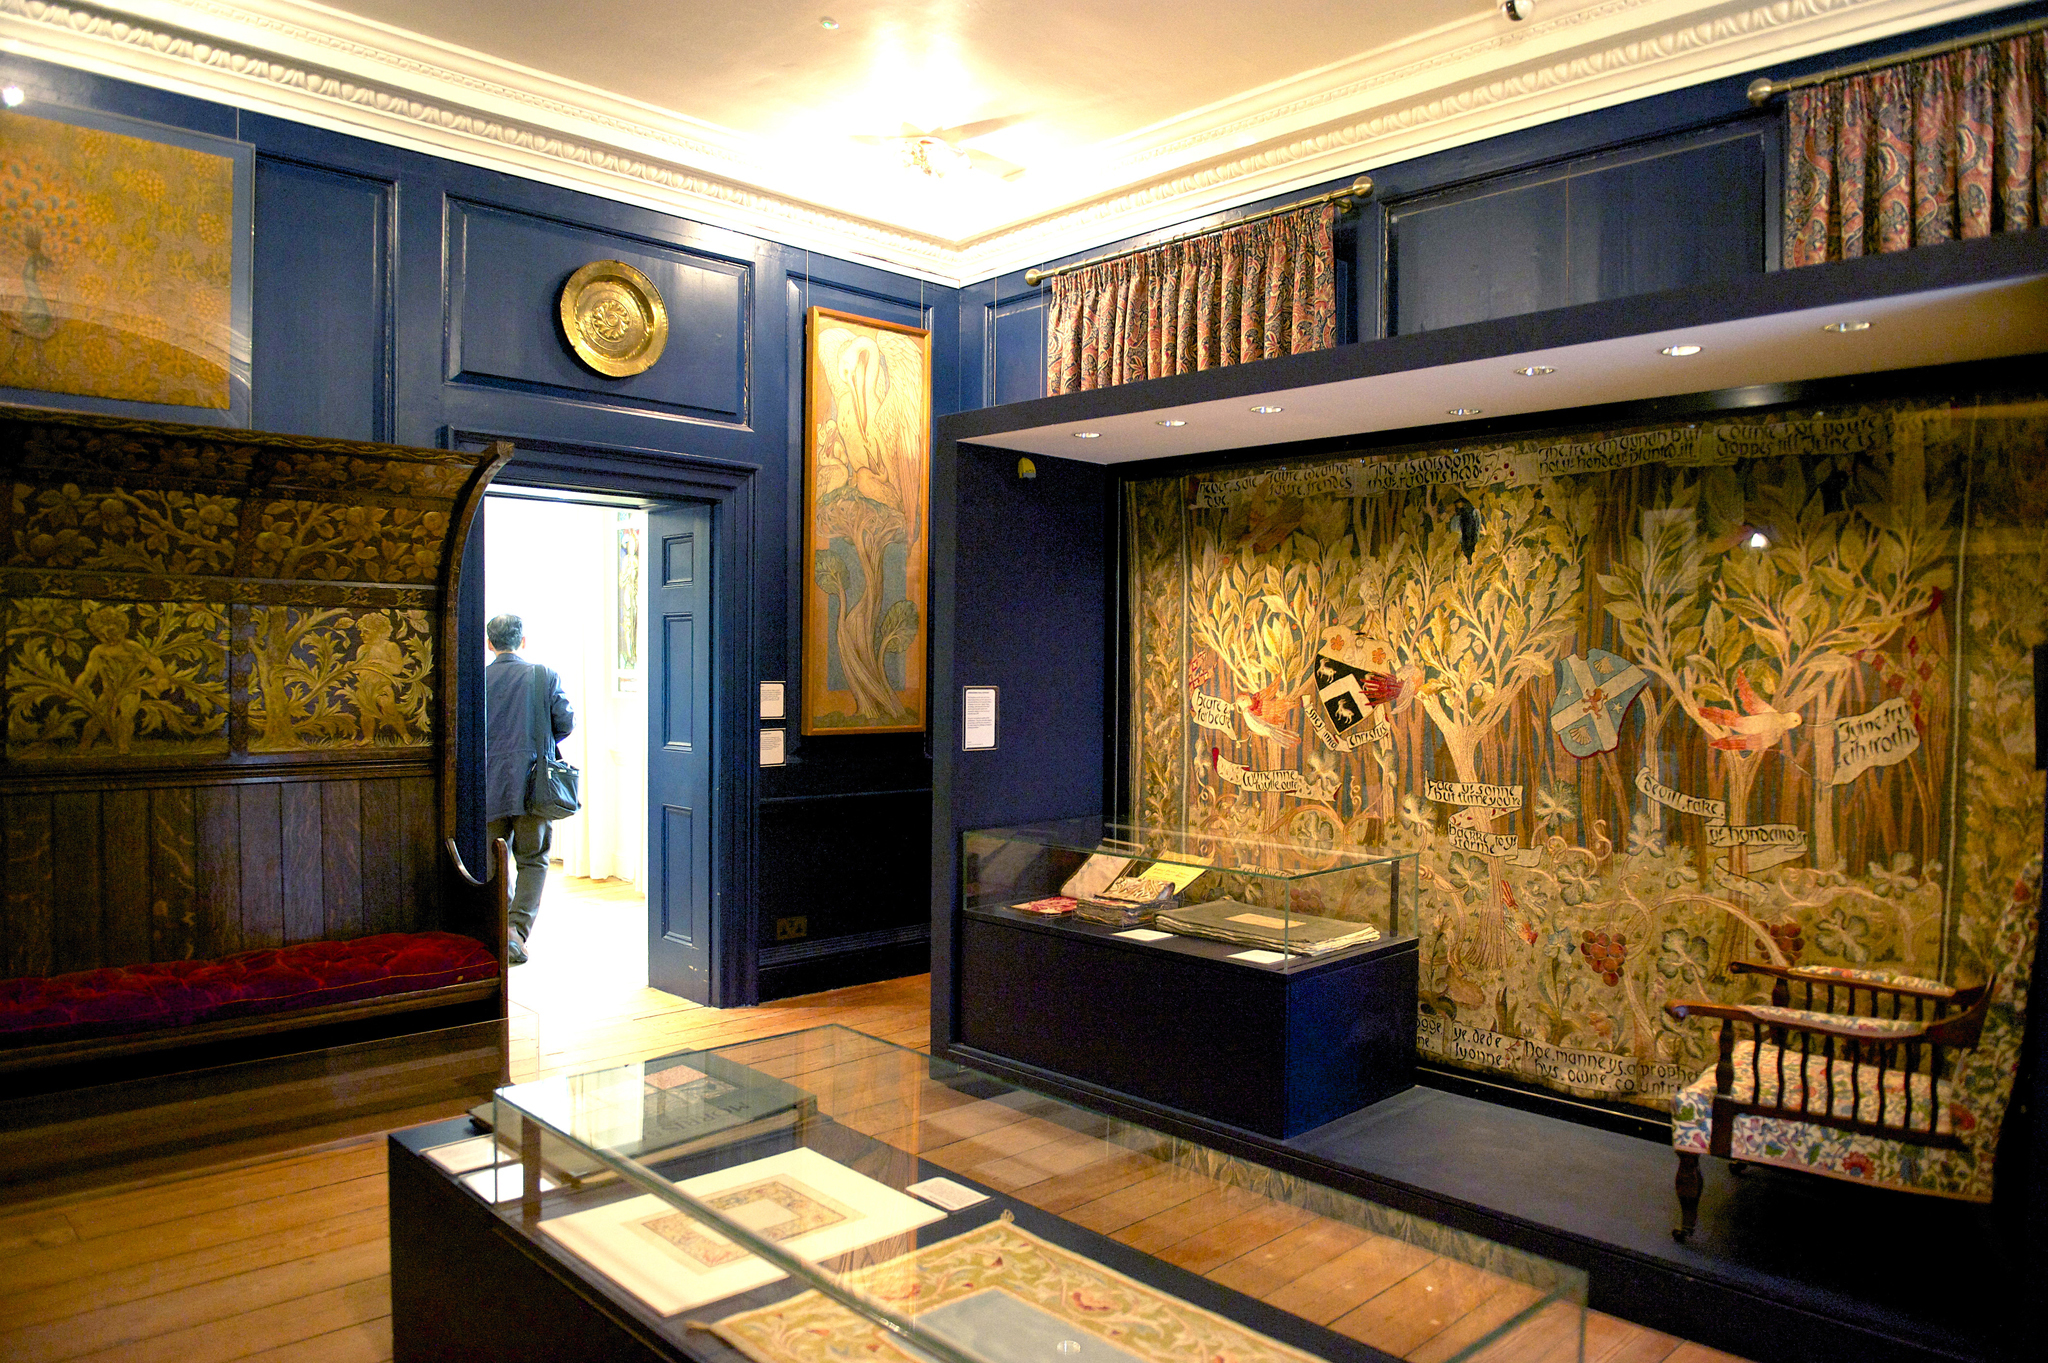 William Morris Gallery Art In Walthamstow London